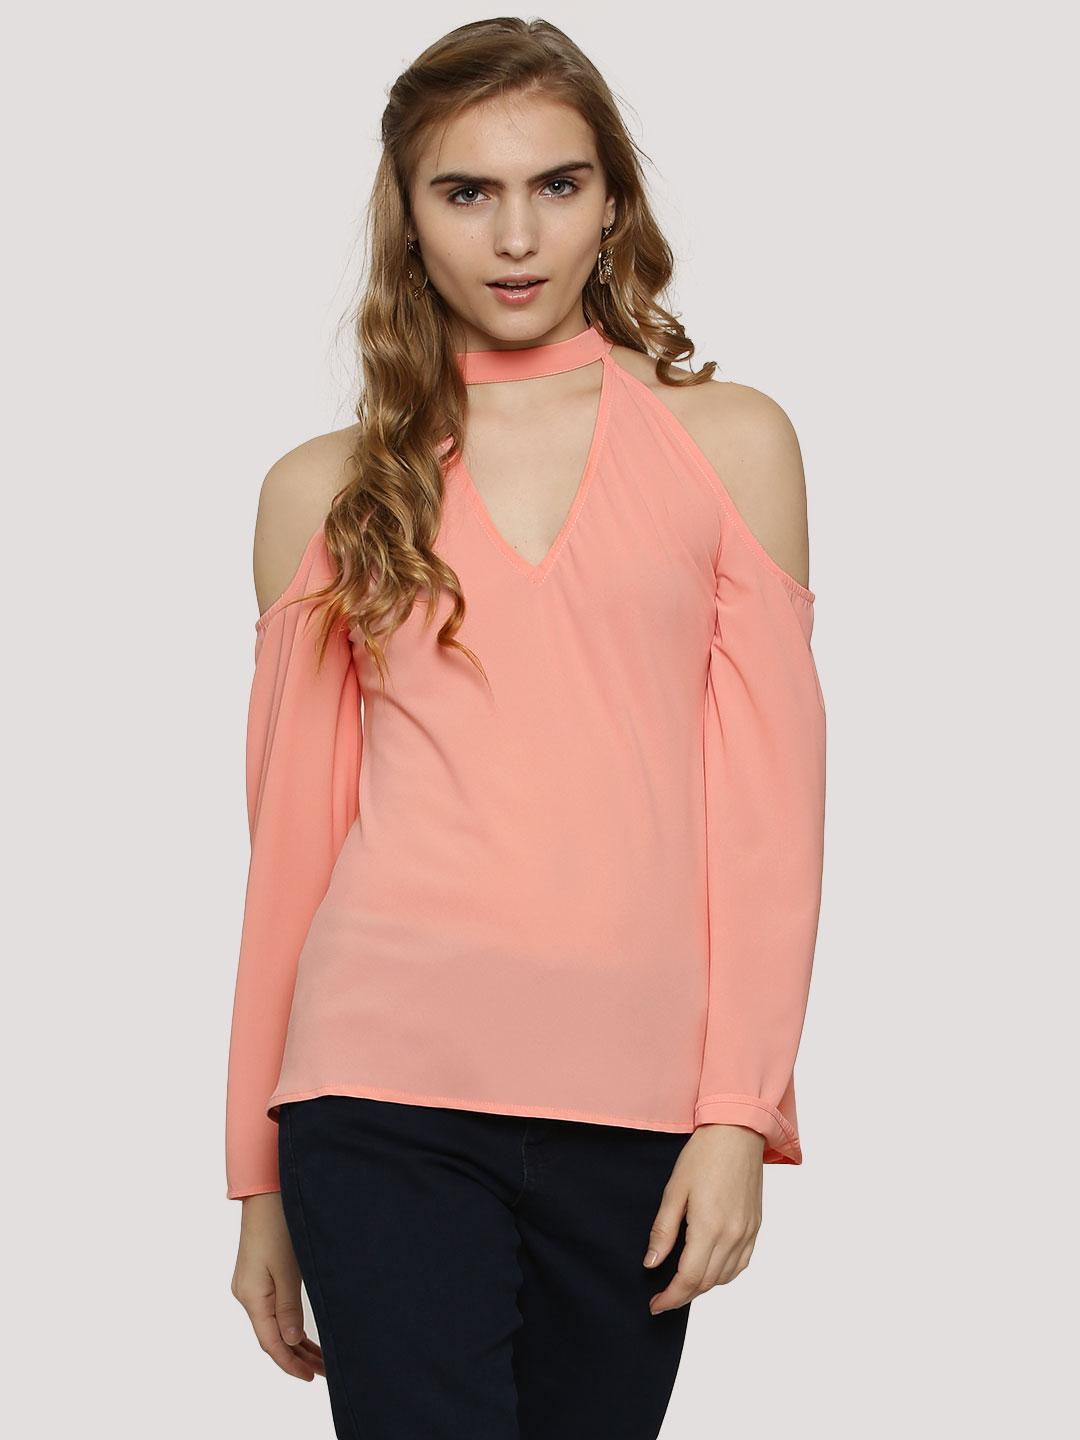 Oliv Blush Pink as NF1529 Choker Top With Bell Sleeves 1